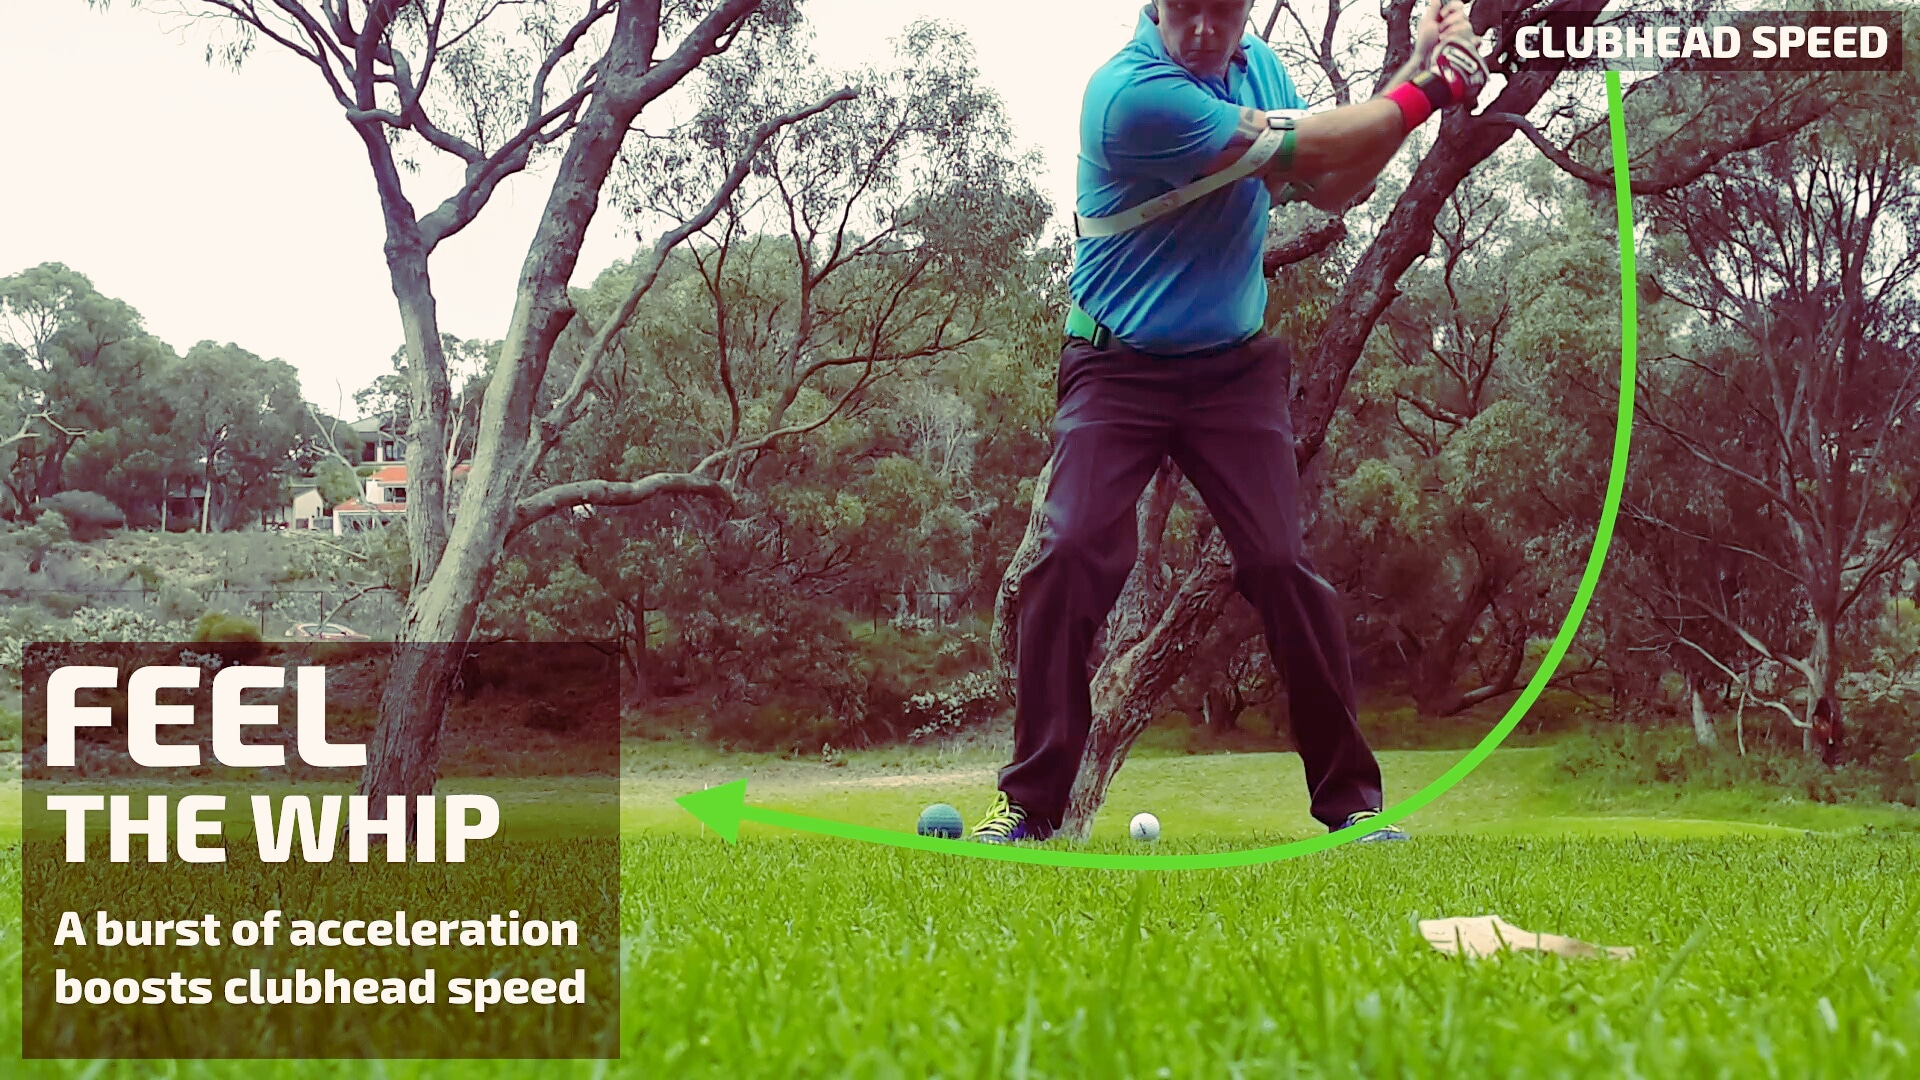 Golf Swing Speed Trainer Increase Clubhead Speed More